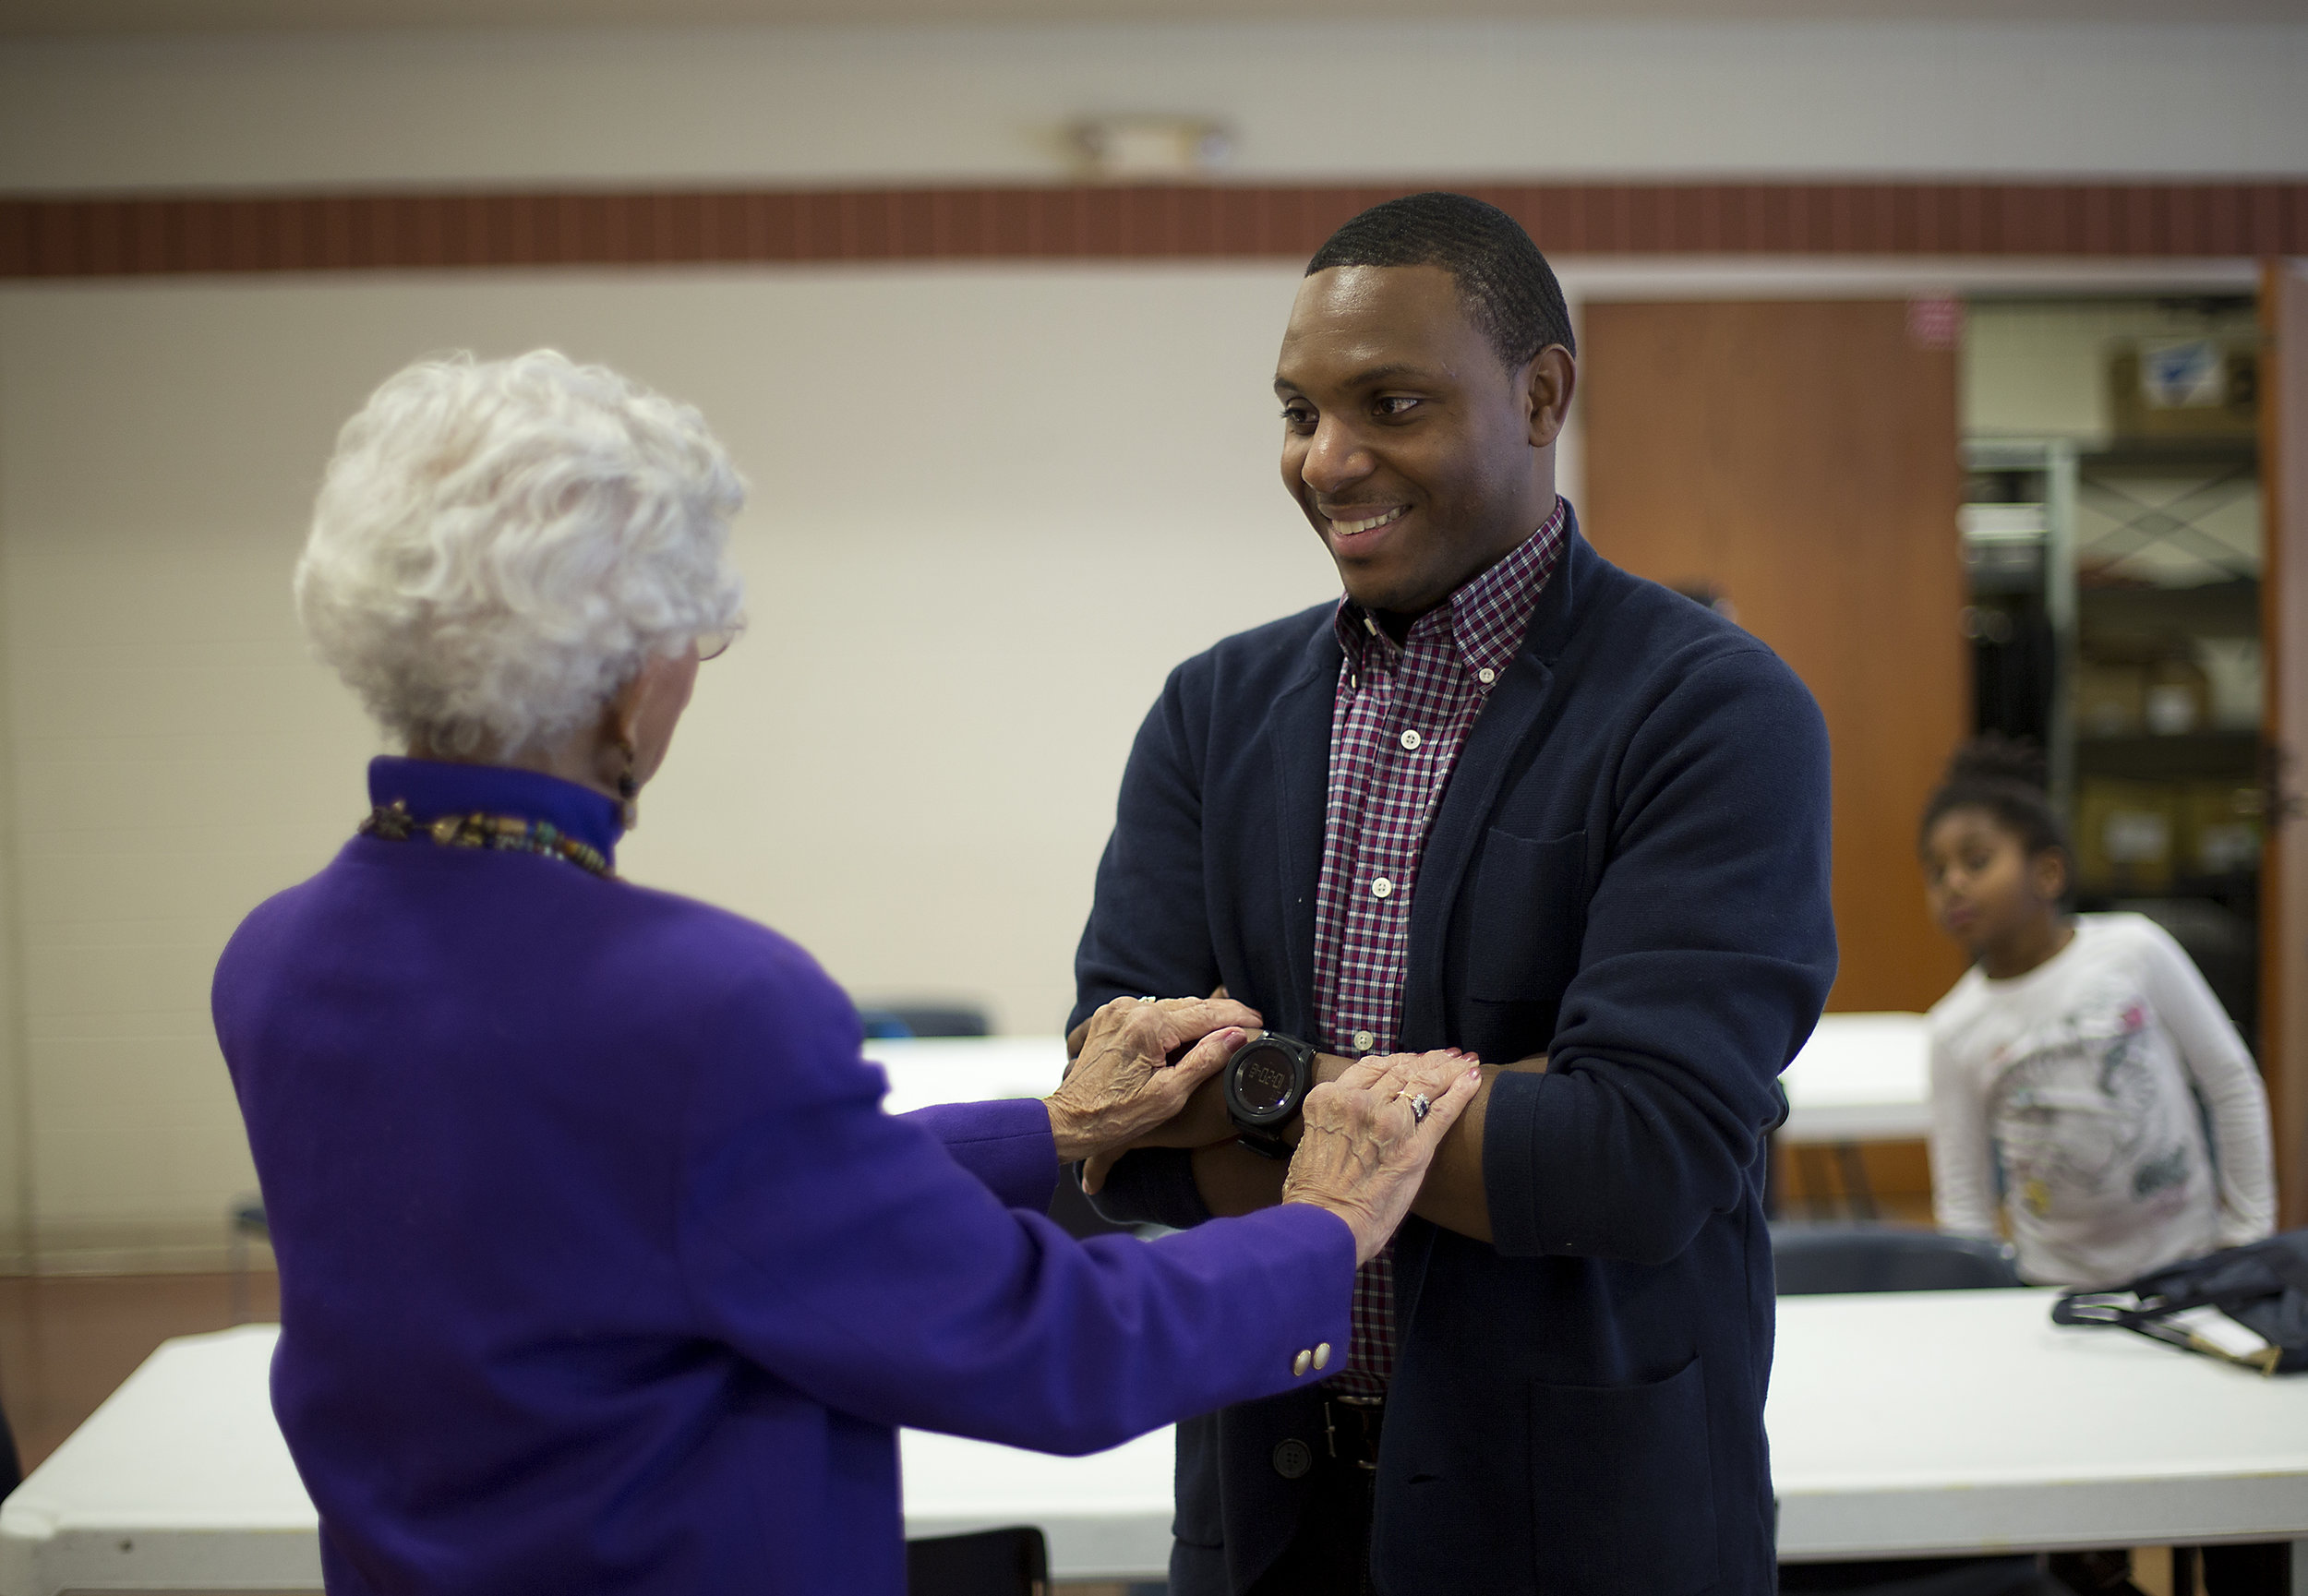 """Darris shares a moment with Dr. Josie R. Johnson, """"the beloved Godmother of the African American community of the Twin Cities,""""at his graduation from the African American Leadership Forum's fellowship program on Dec. 9. Photo by David Pierini."""